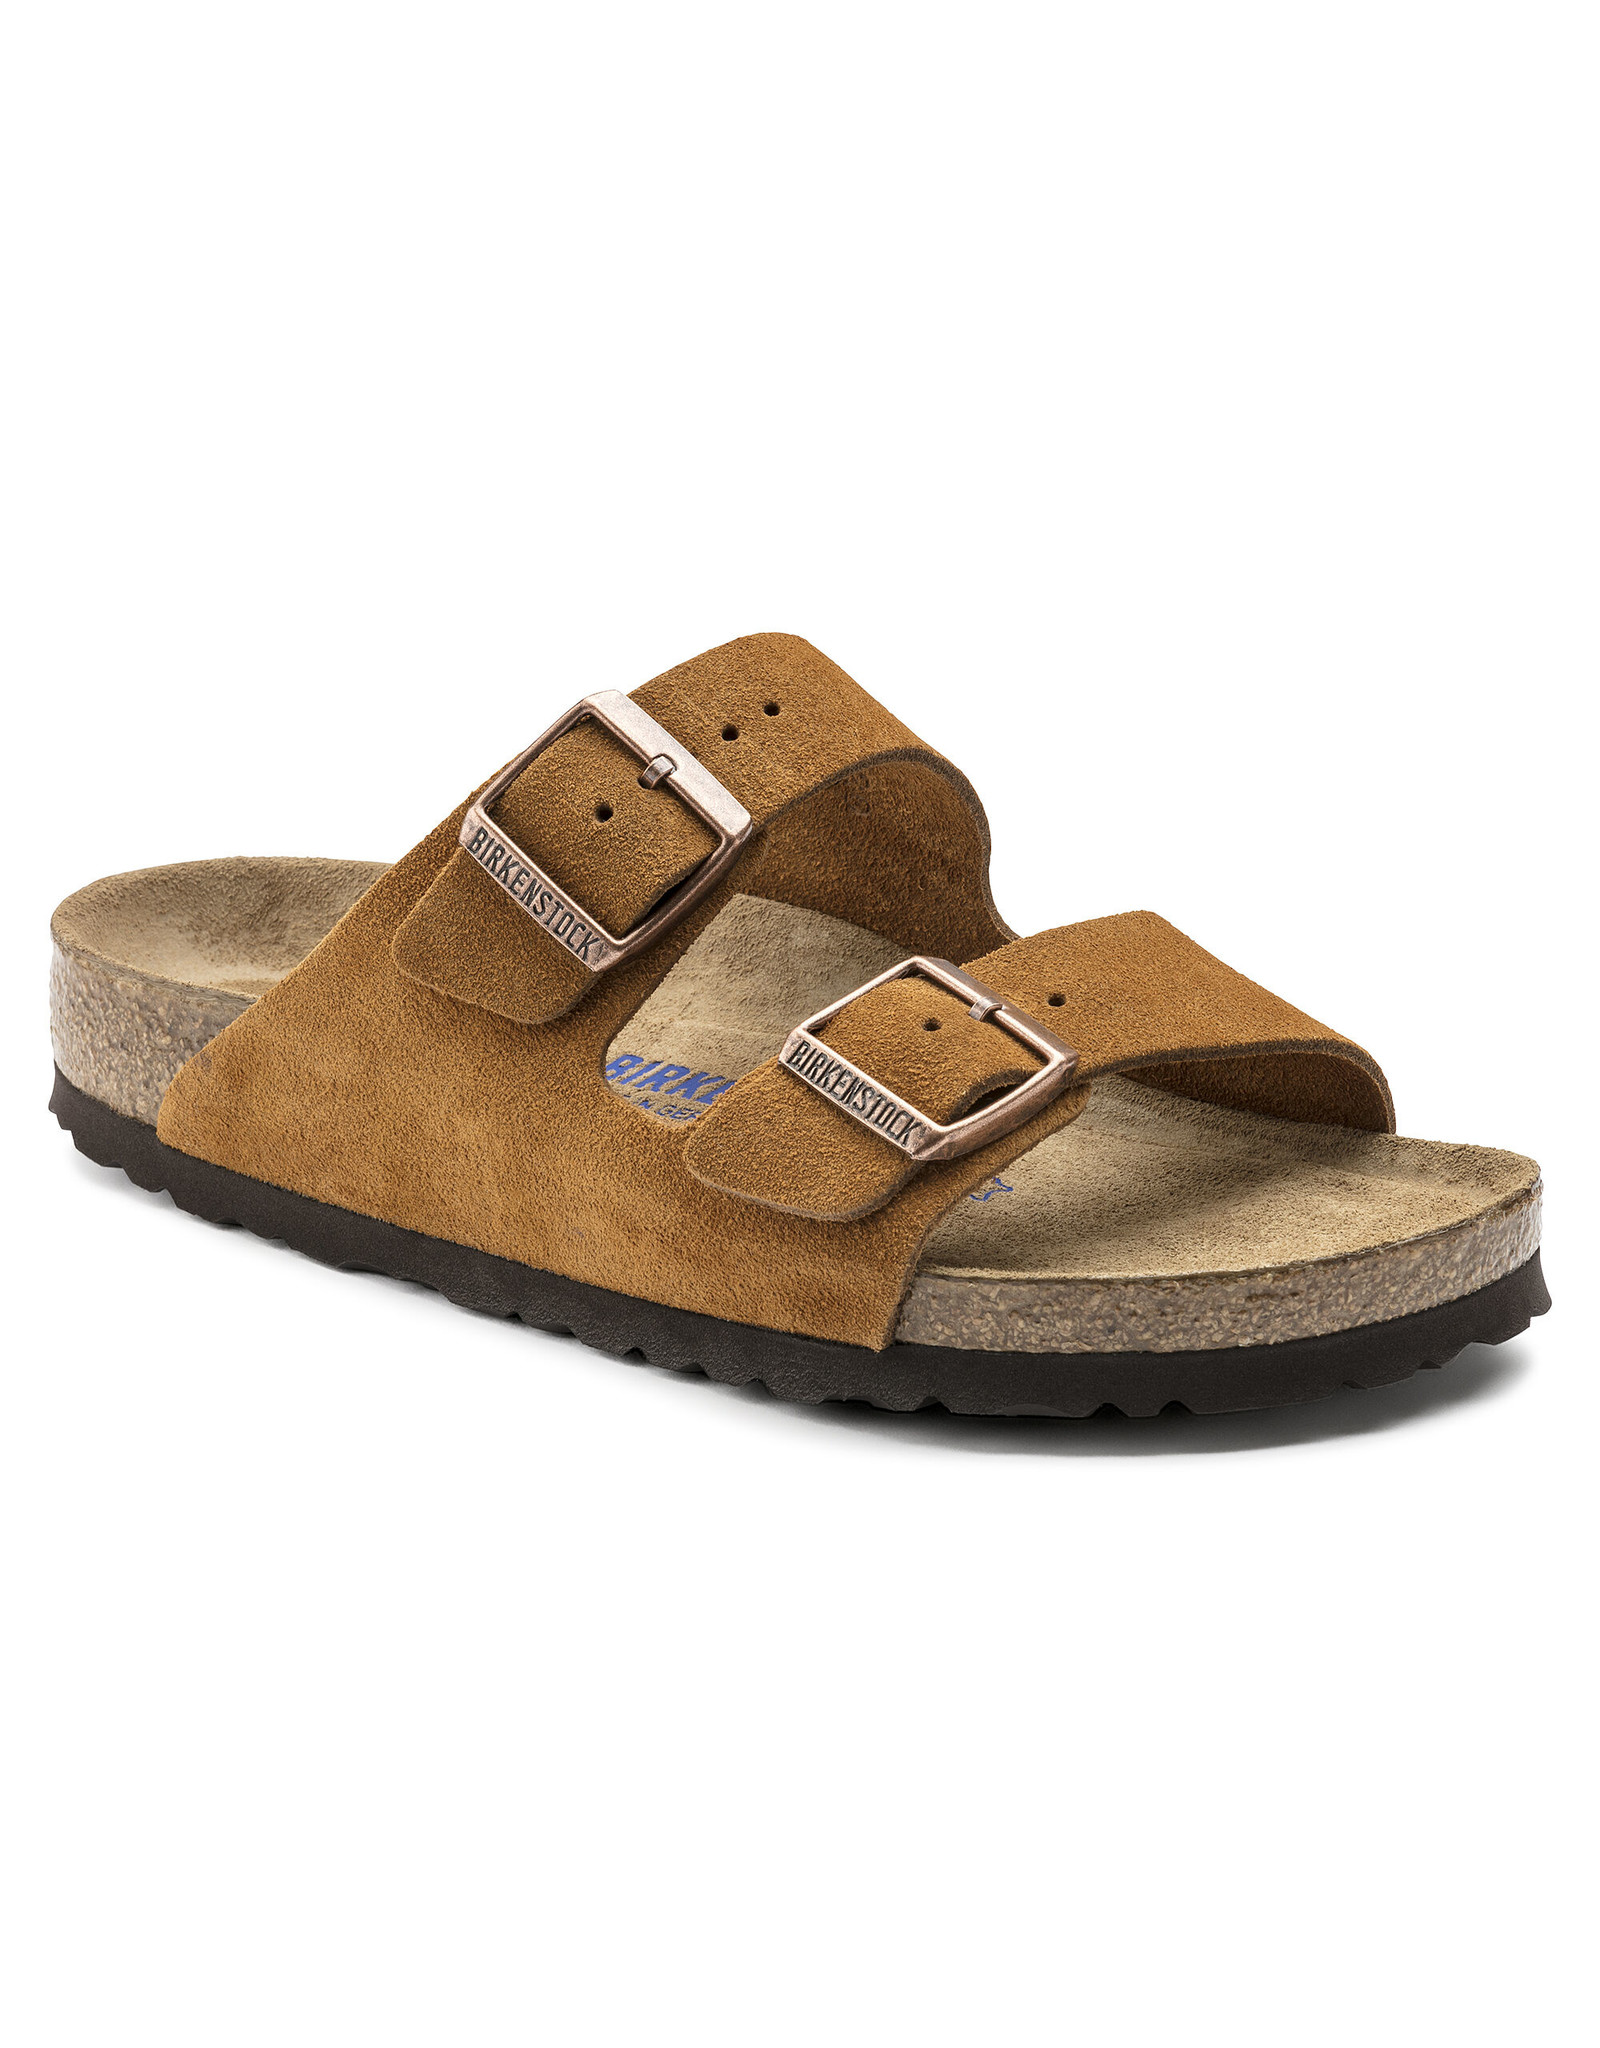 BIRKENSTOCK ARIZONA SOFT FOOTBED SUEDE LEATHER-MINK SUEDE